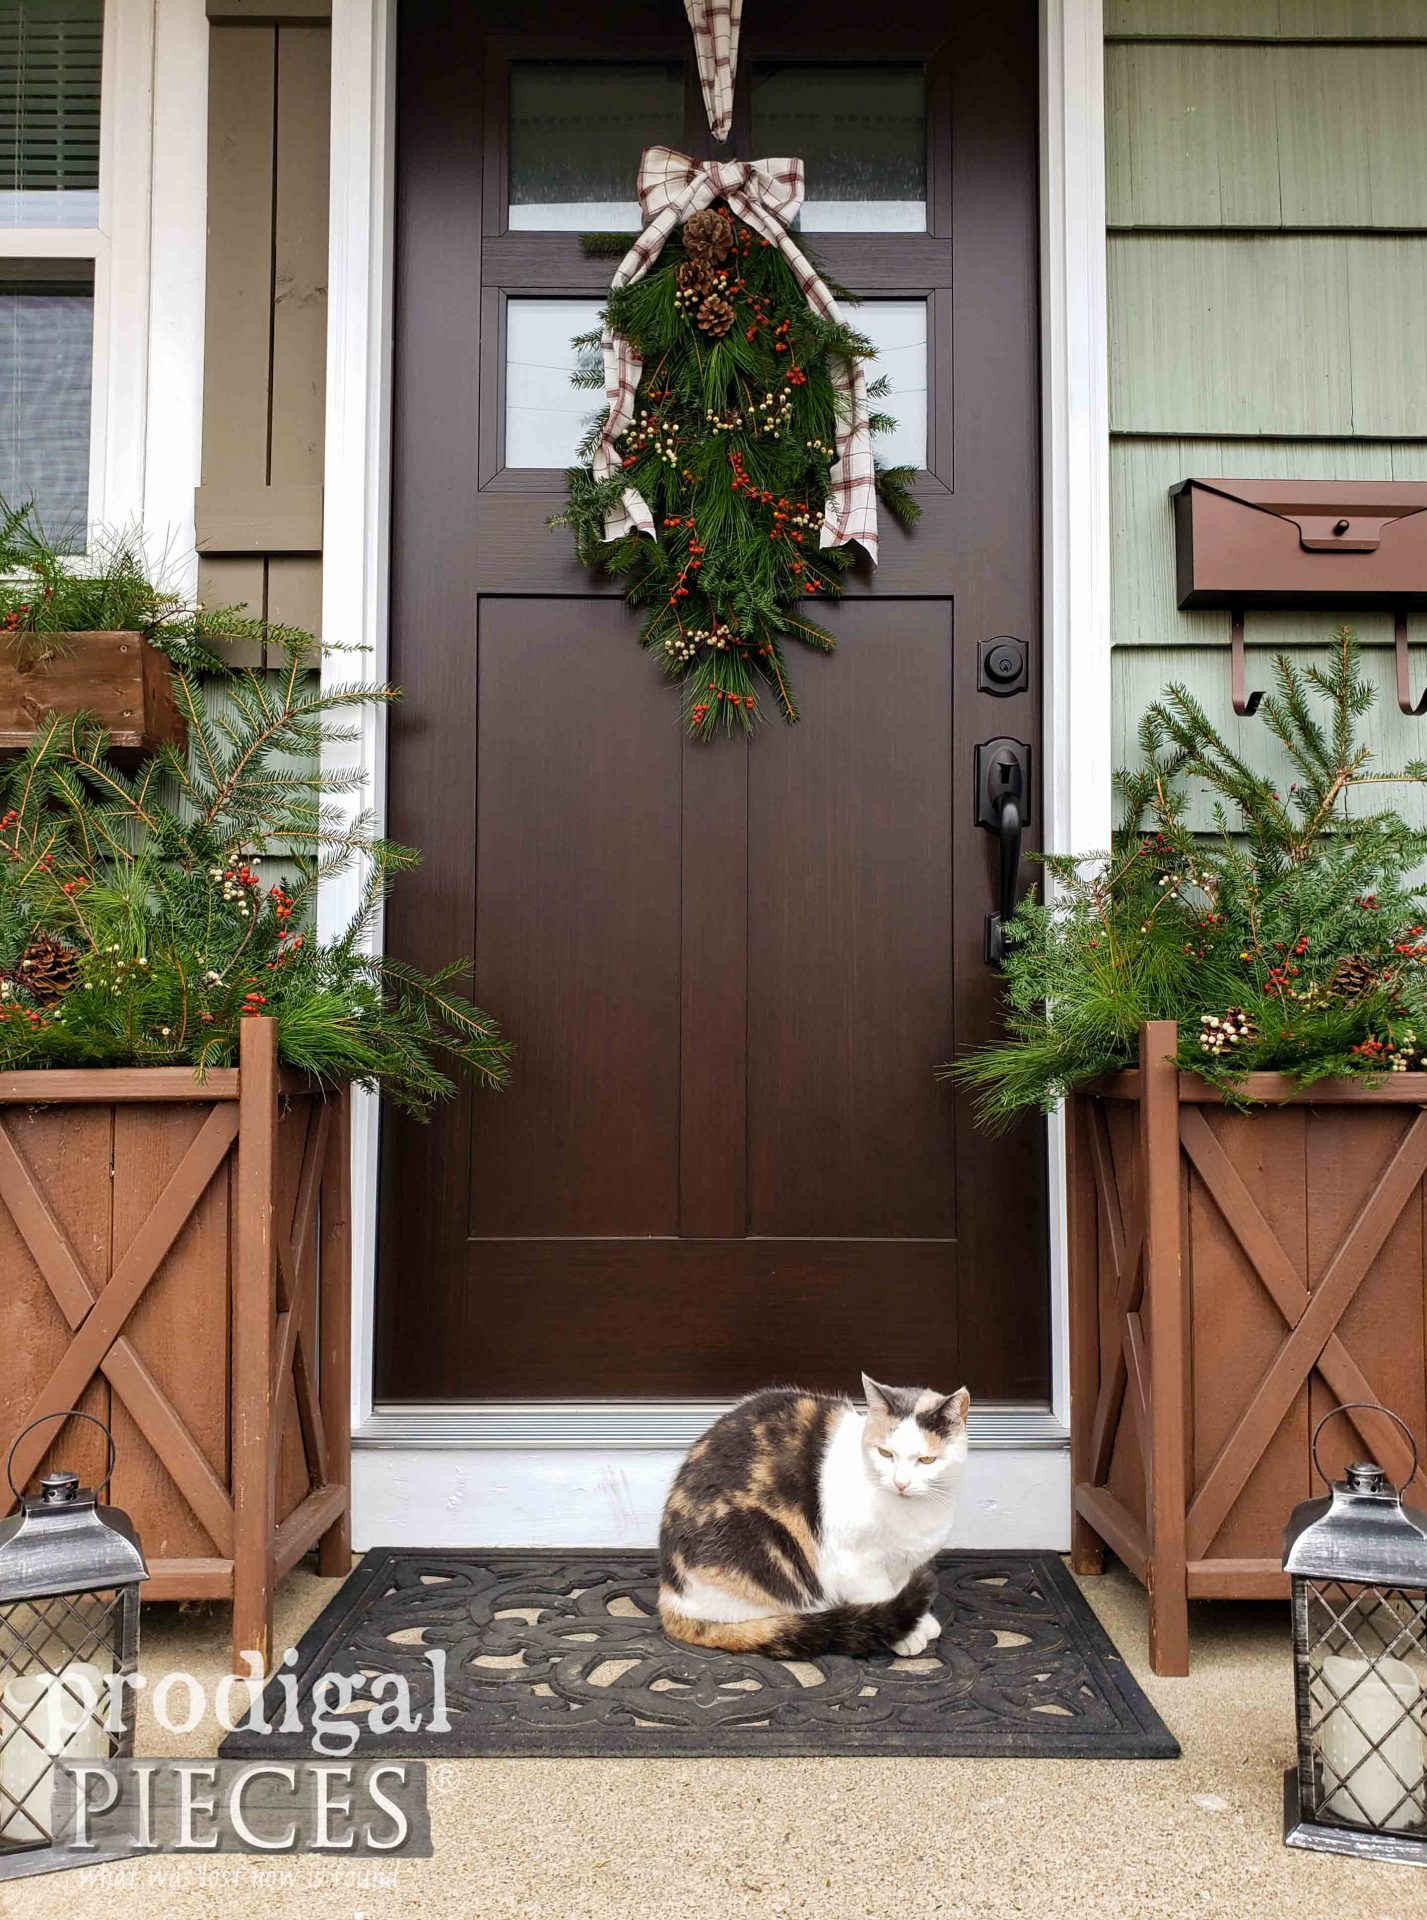 Farmhouse Christmas Front Door with Fresh Greens and Calico Cat | by Prodigal Pieces | prodigalpieces.com #prodigalpieces #entry #home #christmas #diy #homedecor #farmhouse #nordic #pets